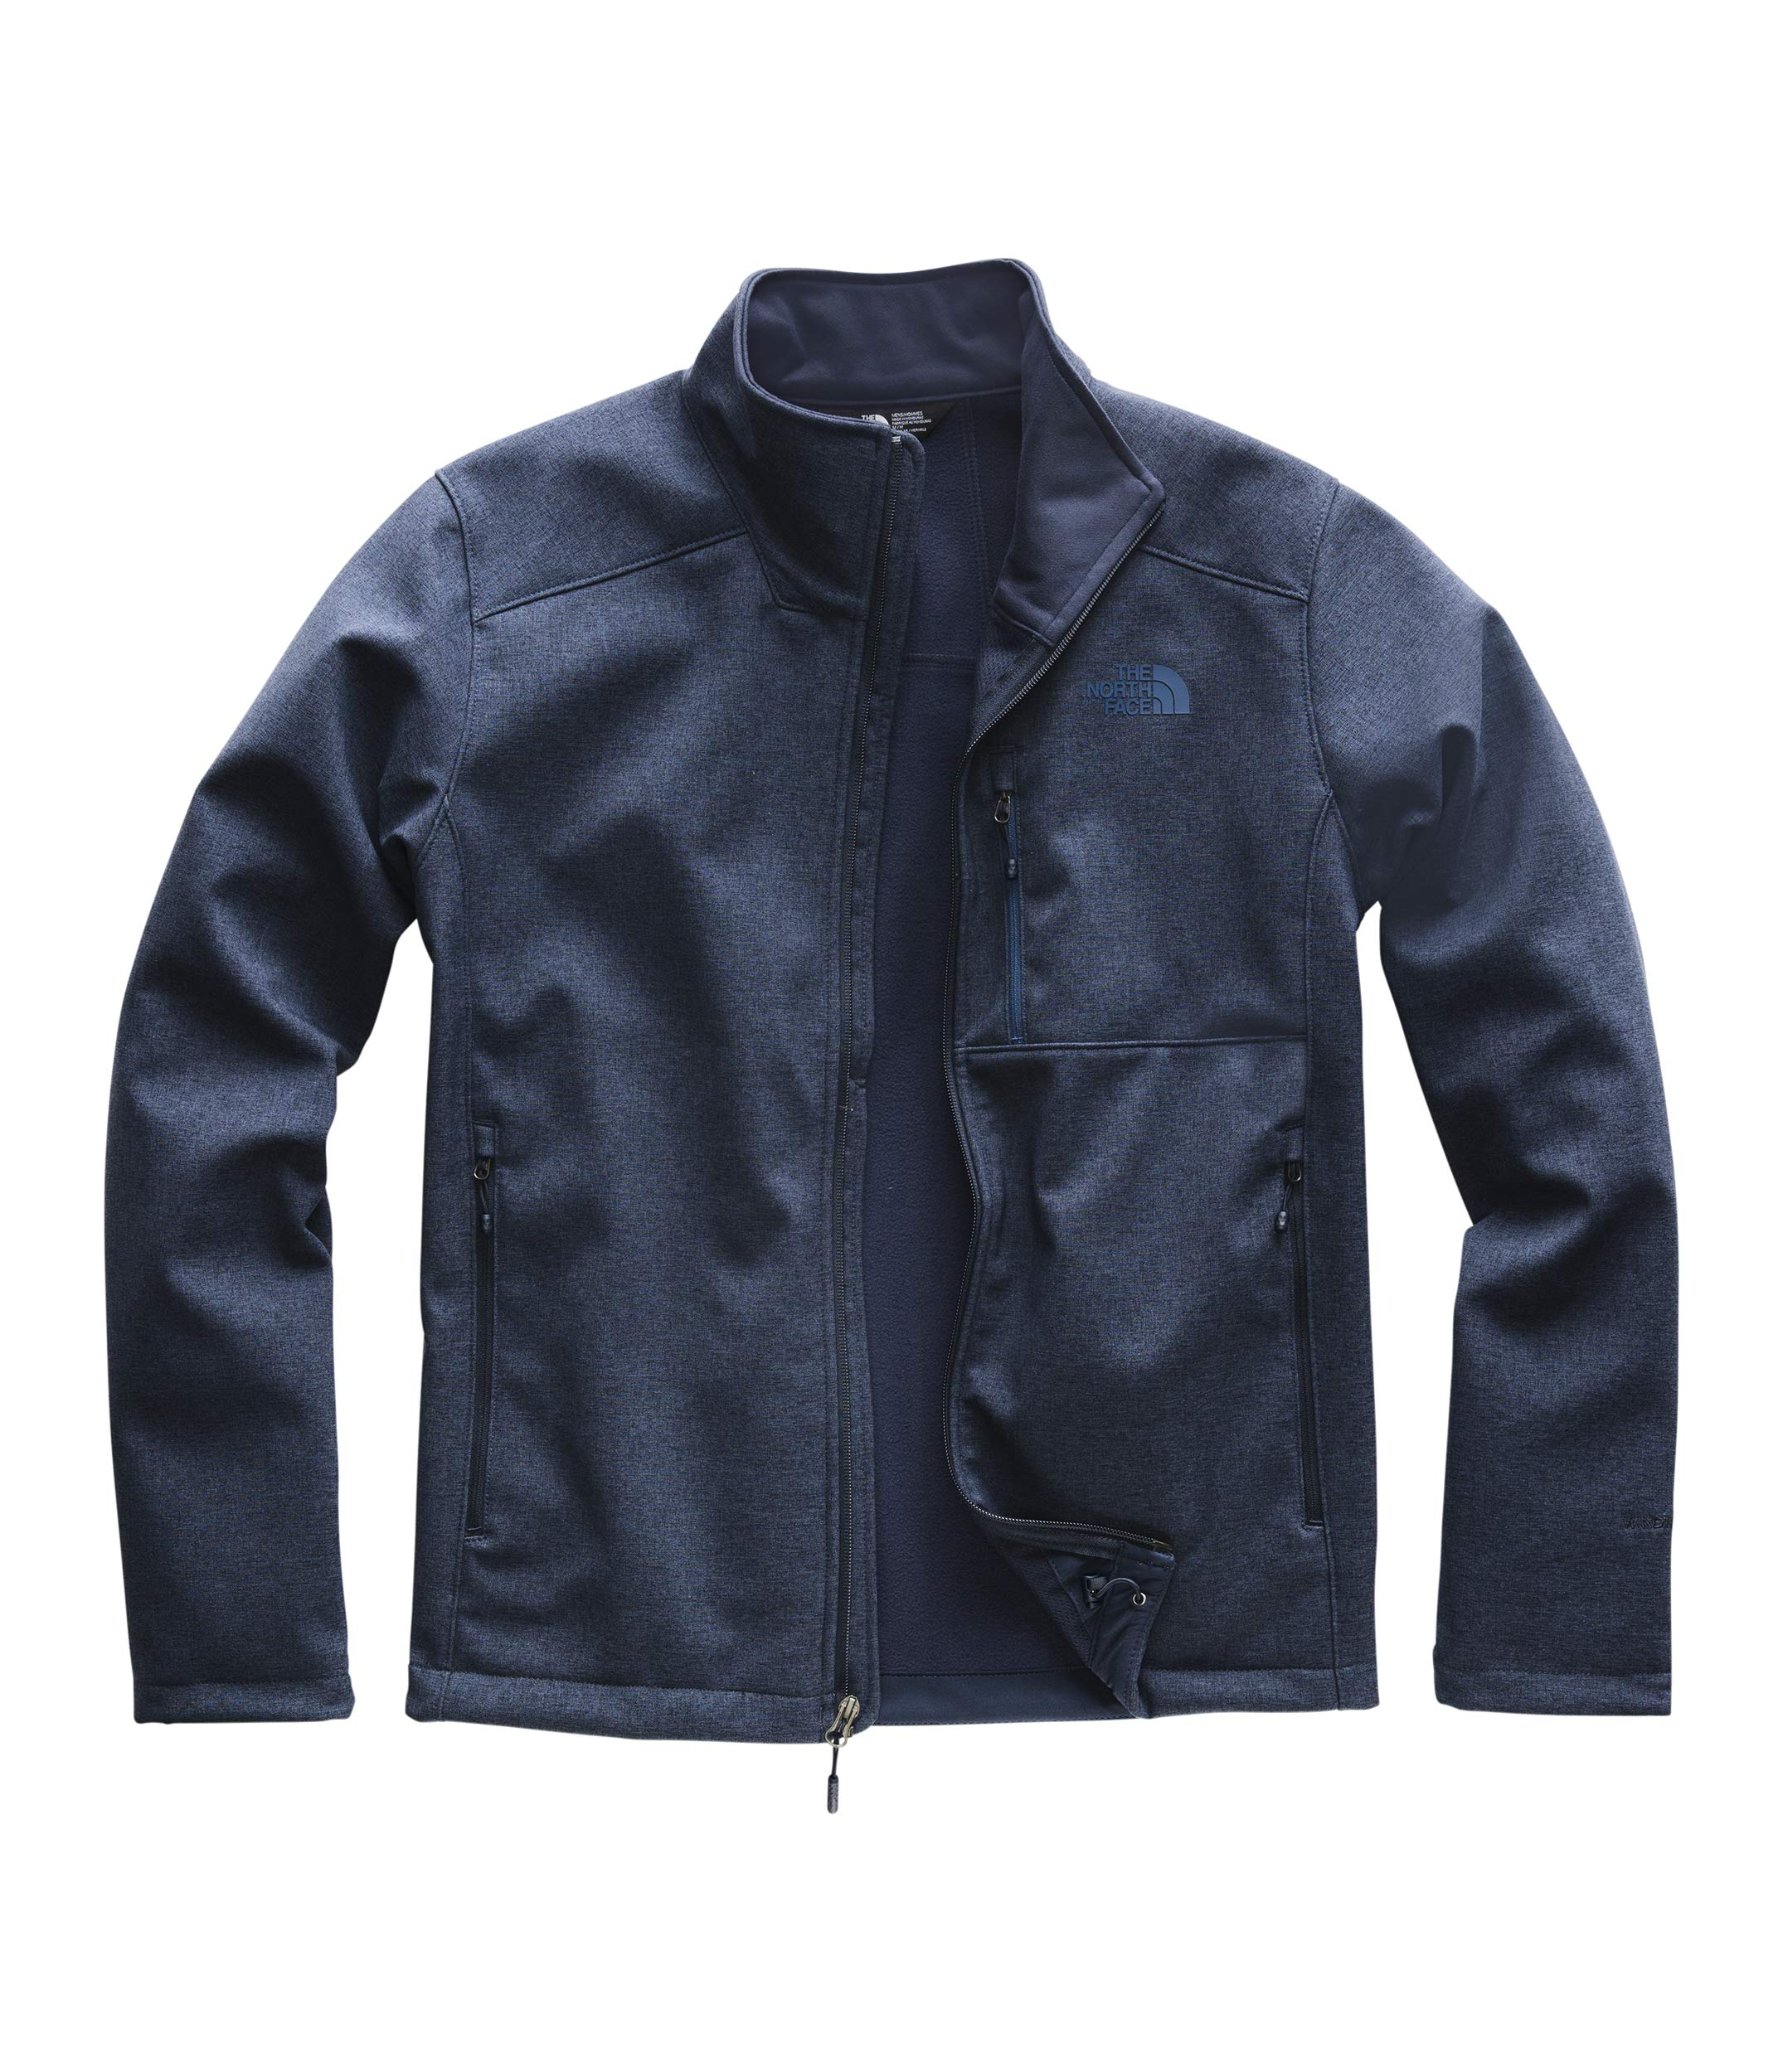 The North Face Men's Apex Bionic 2 Jacket, Urban Navy Heather, Size L by The North Face